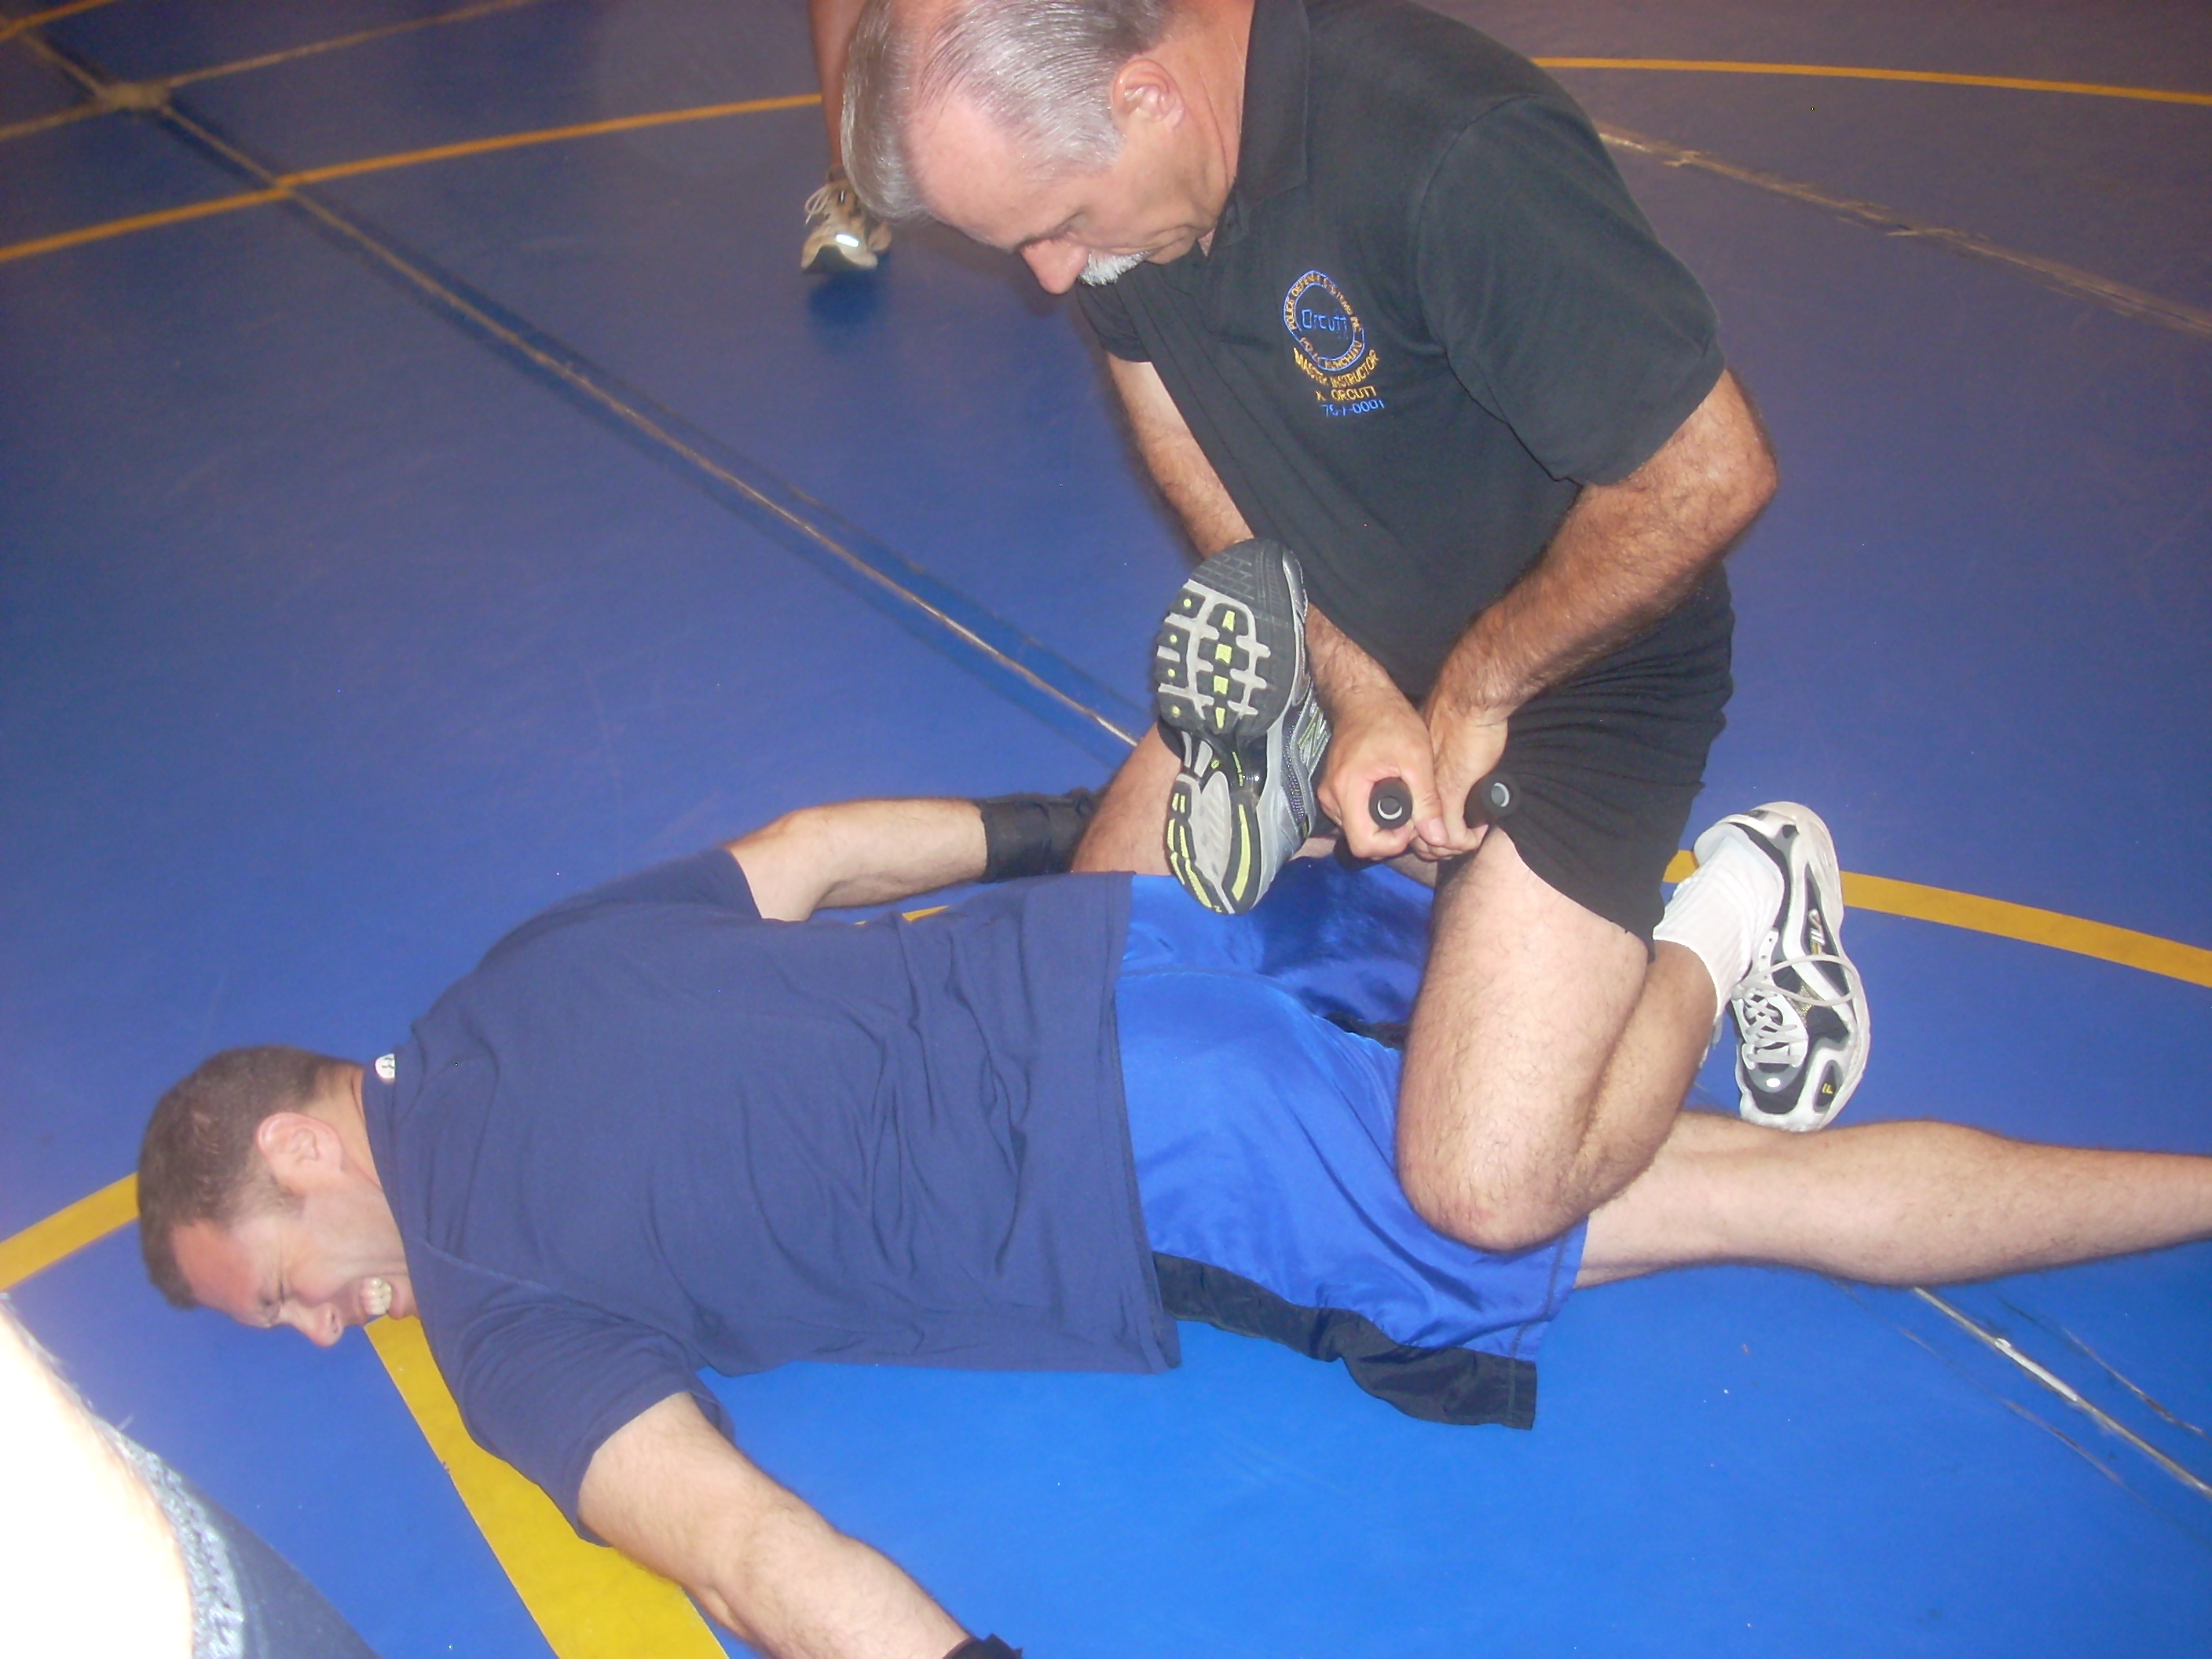 Man in blue being restrained by the ankle.